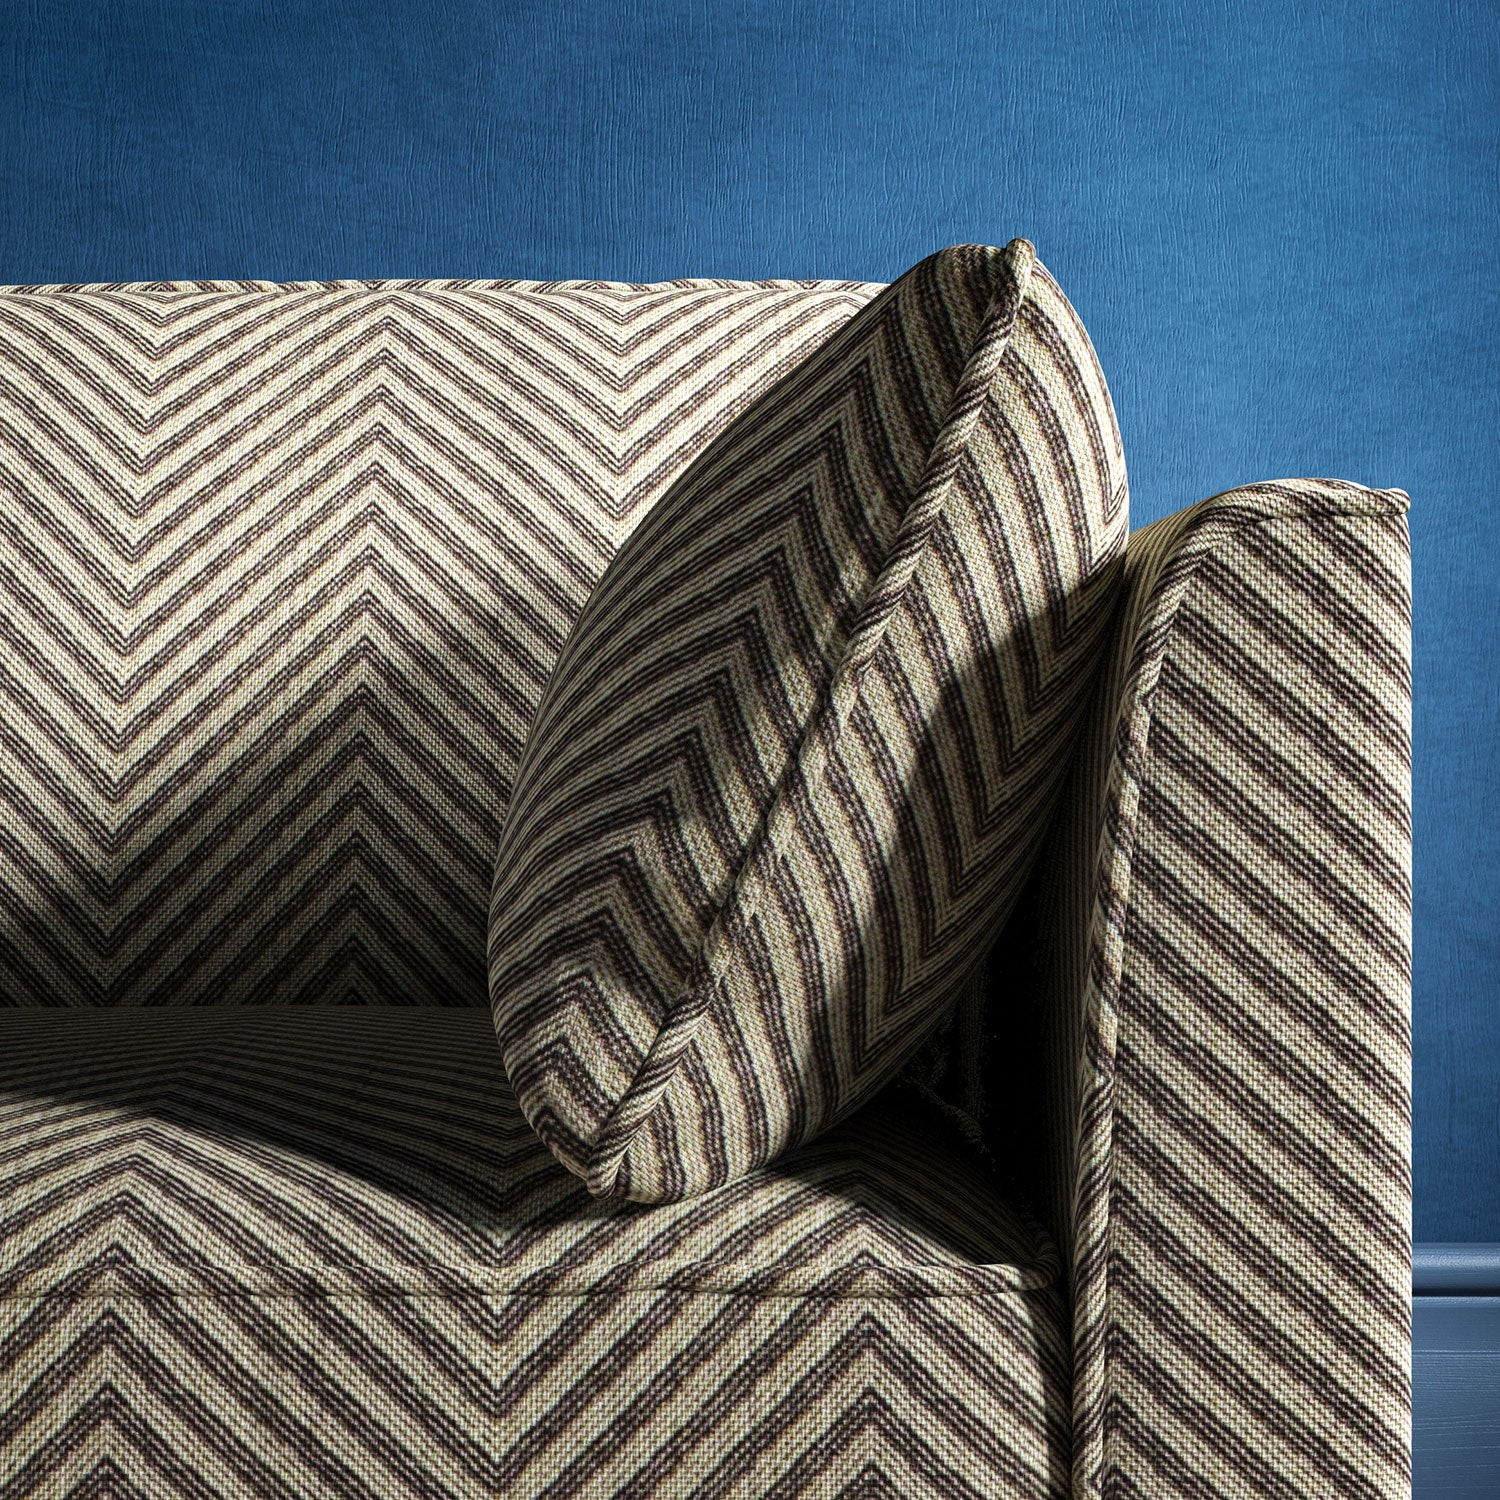 Sofa upholstered in a dark grey herringbone weave upholstery fabric